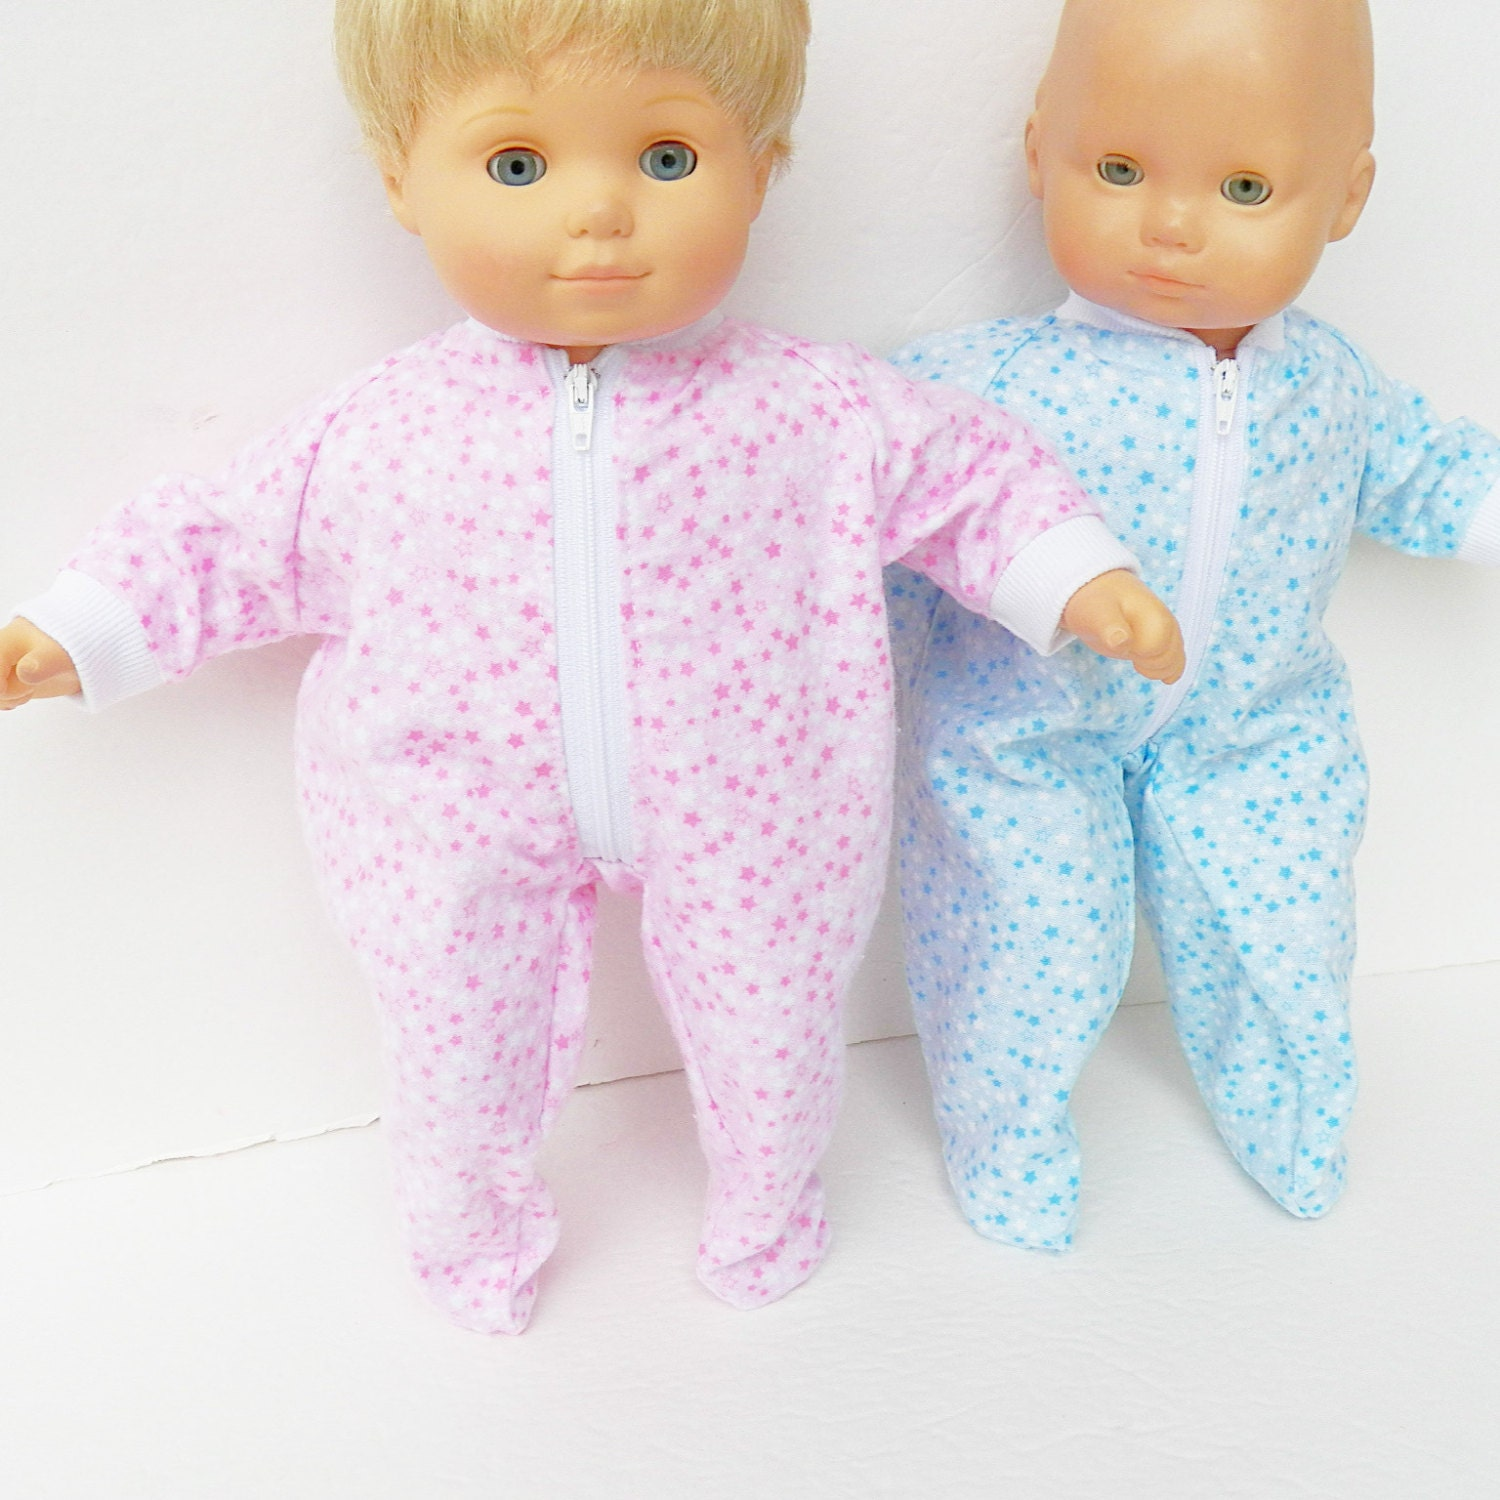 Bitty baby clothes boy and girl 15 twin doll pajamas